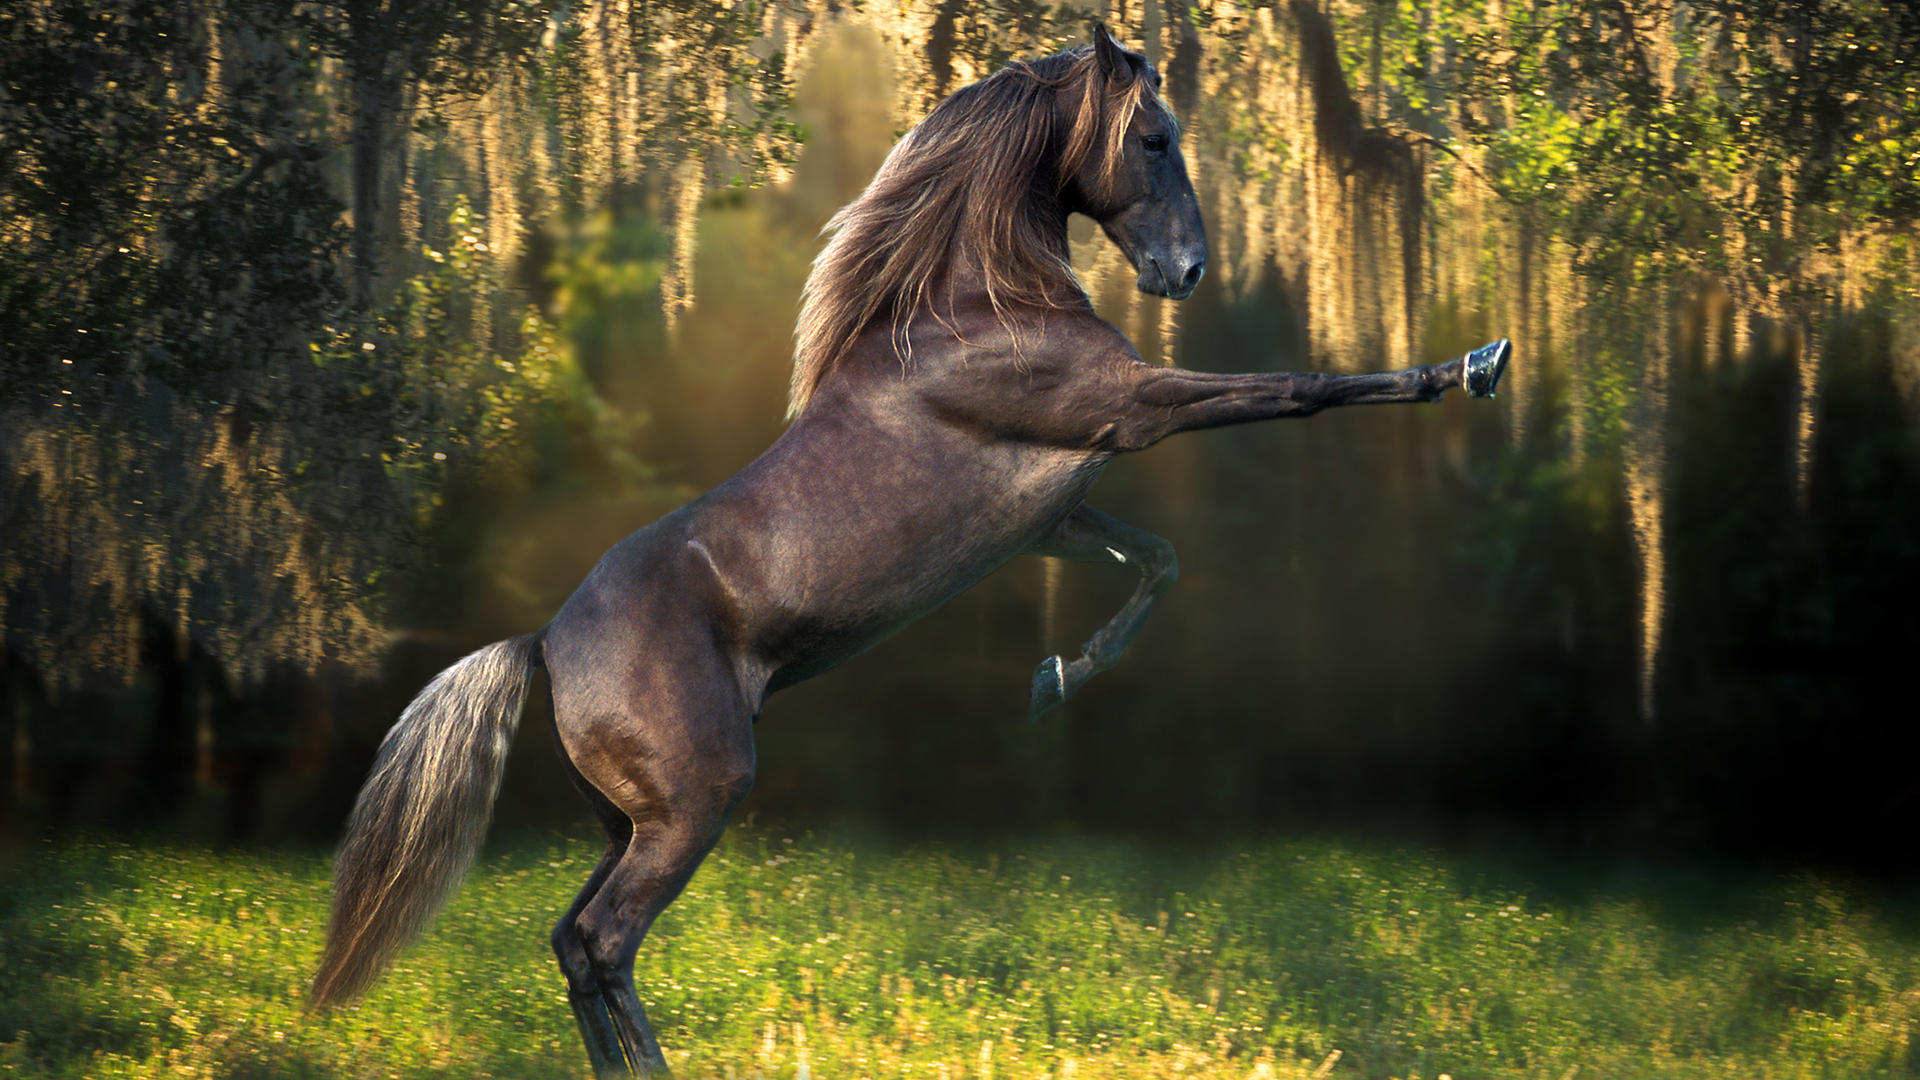 Horse HD Wallpapers Free Wallpaper Downloads Horse HD